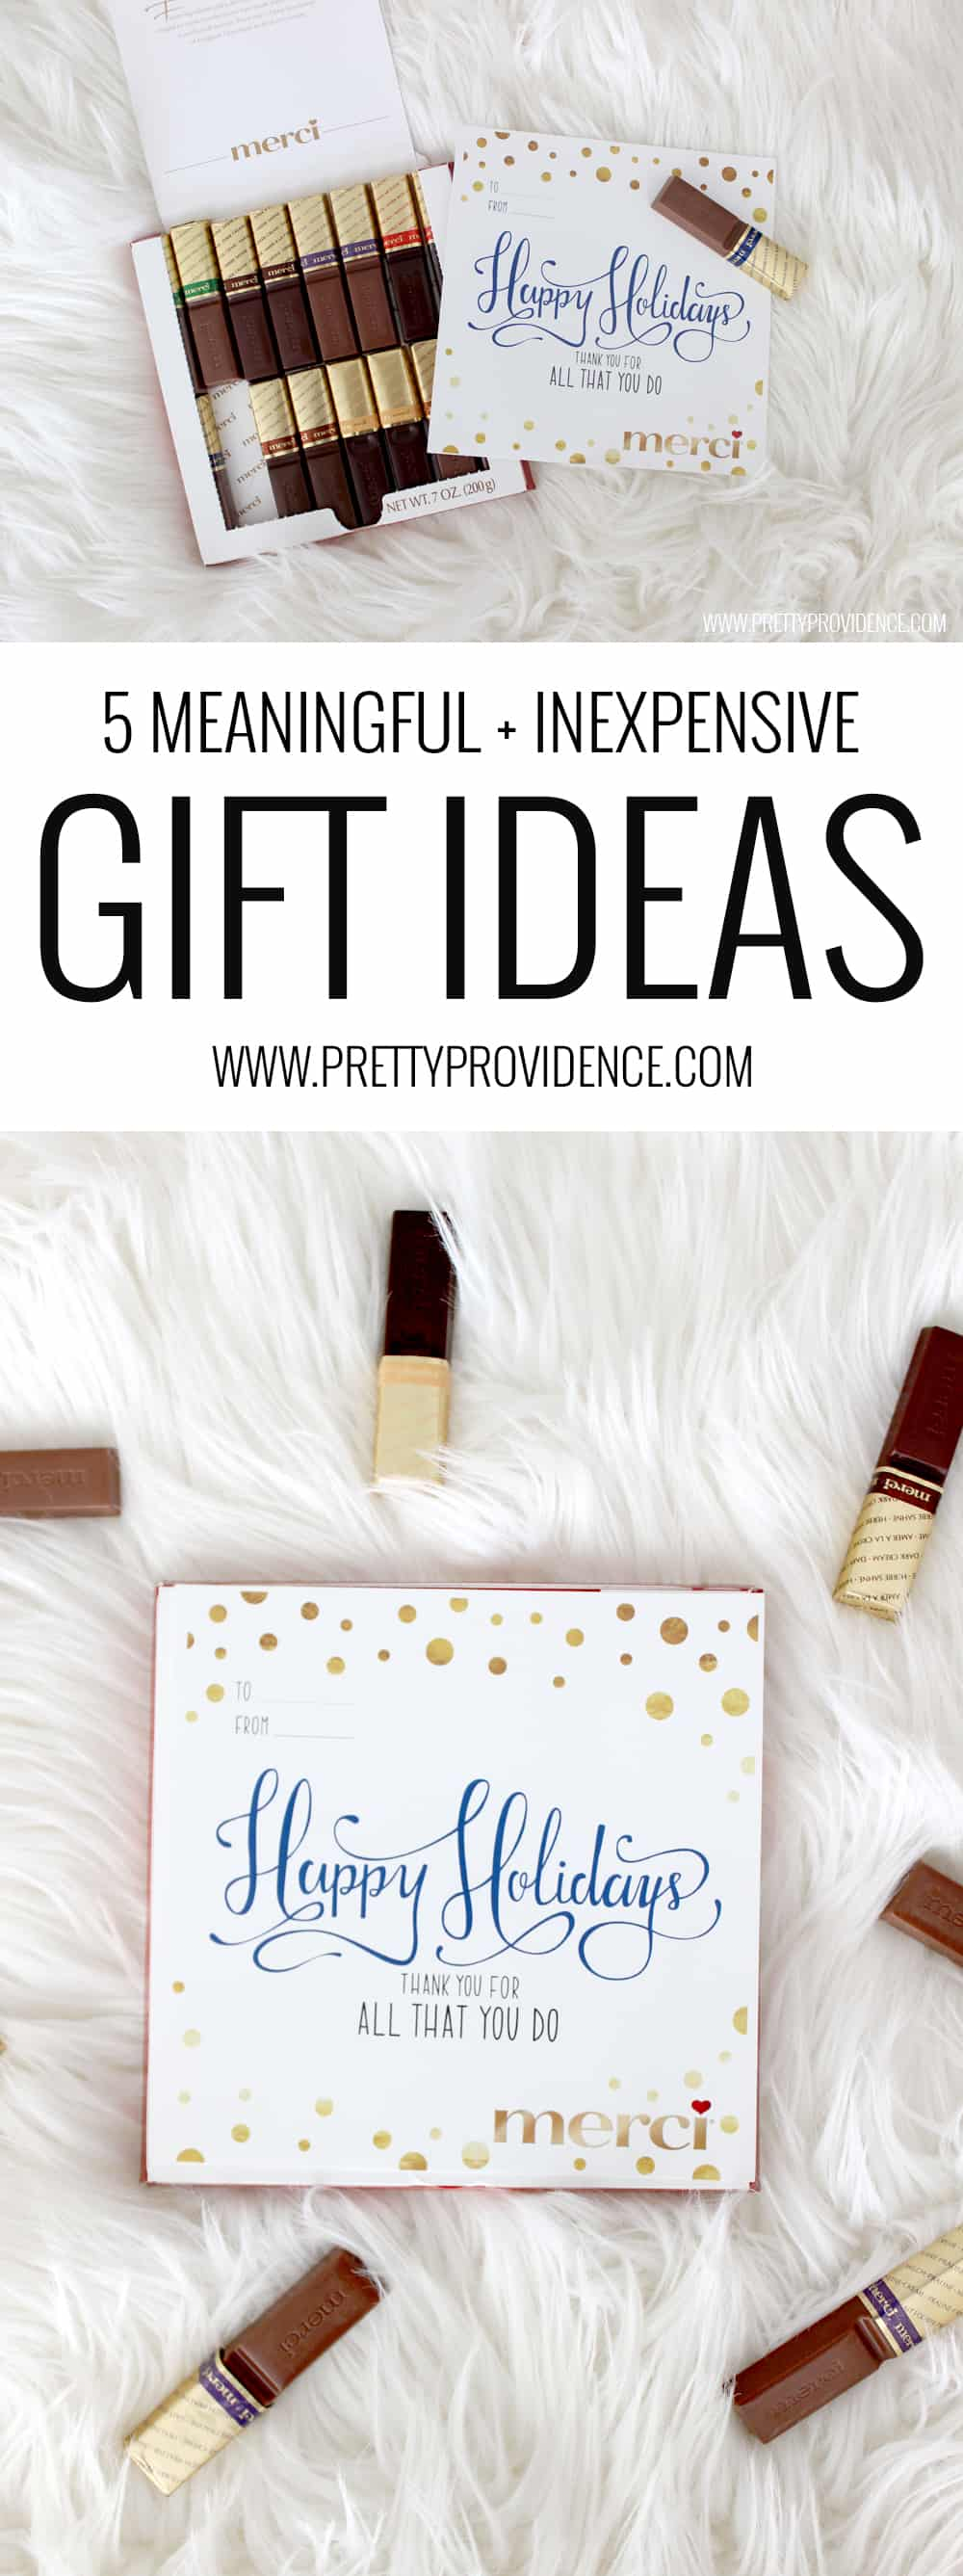 Meaningful and Inexpensive Gift Ideas